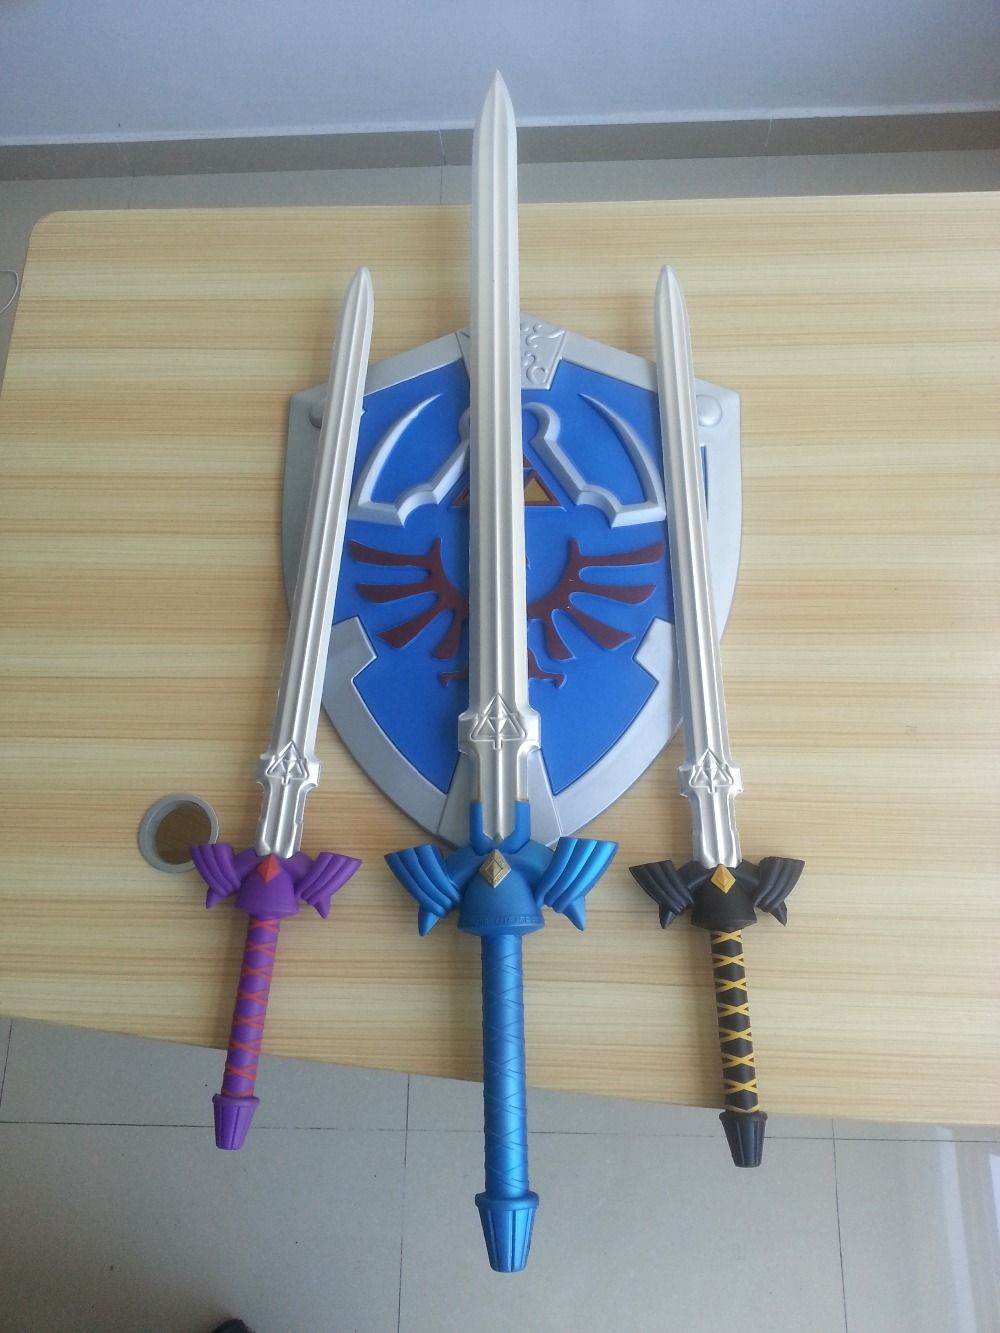 EVA foam The Legend of Zelda Blue Replica Master Sword And Shield Prop Display New cosplay toys and Birthday Gifts